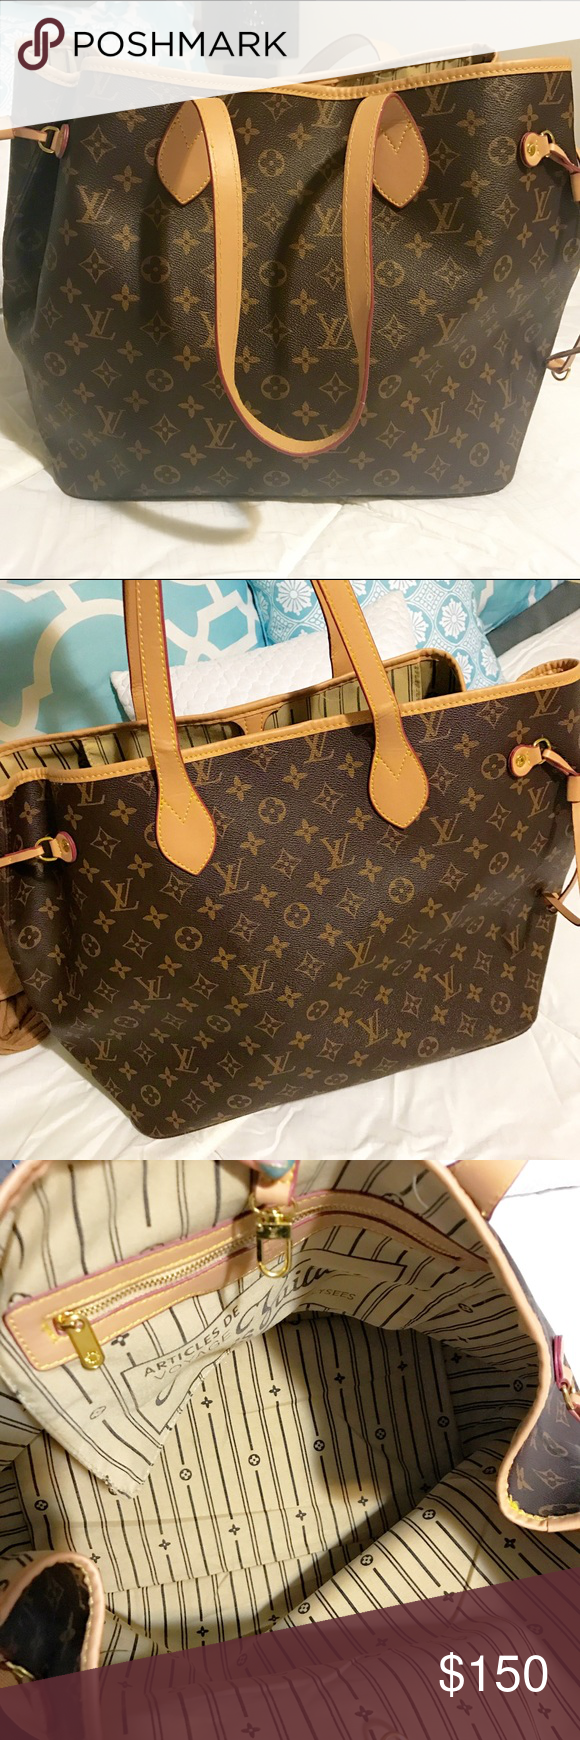 LV Neverfull MM Monogram Brand New Neverfull MM Size👜 Not Authentic 🚫 Comes w/ Dust Bag. Great Quality!!! 👌🏽Let's be real ladies, plenty of us (including me🙋🏼)  can't afford a $1,800 LV handbag but, w/ a great replica no one will even know 😉 Louis Vuitton Bags Totes